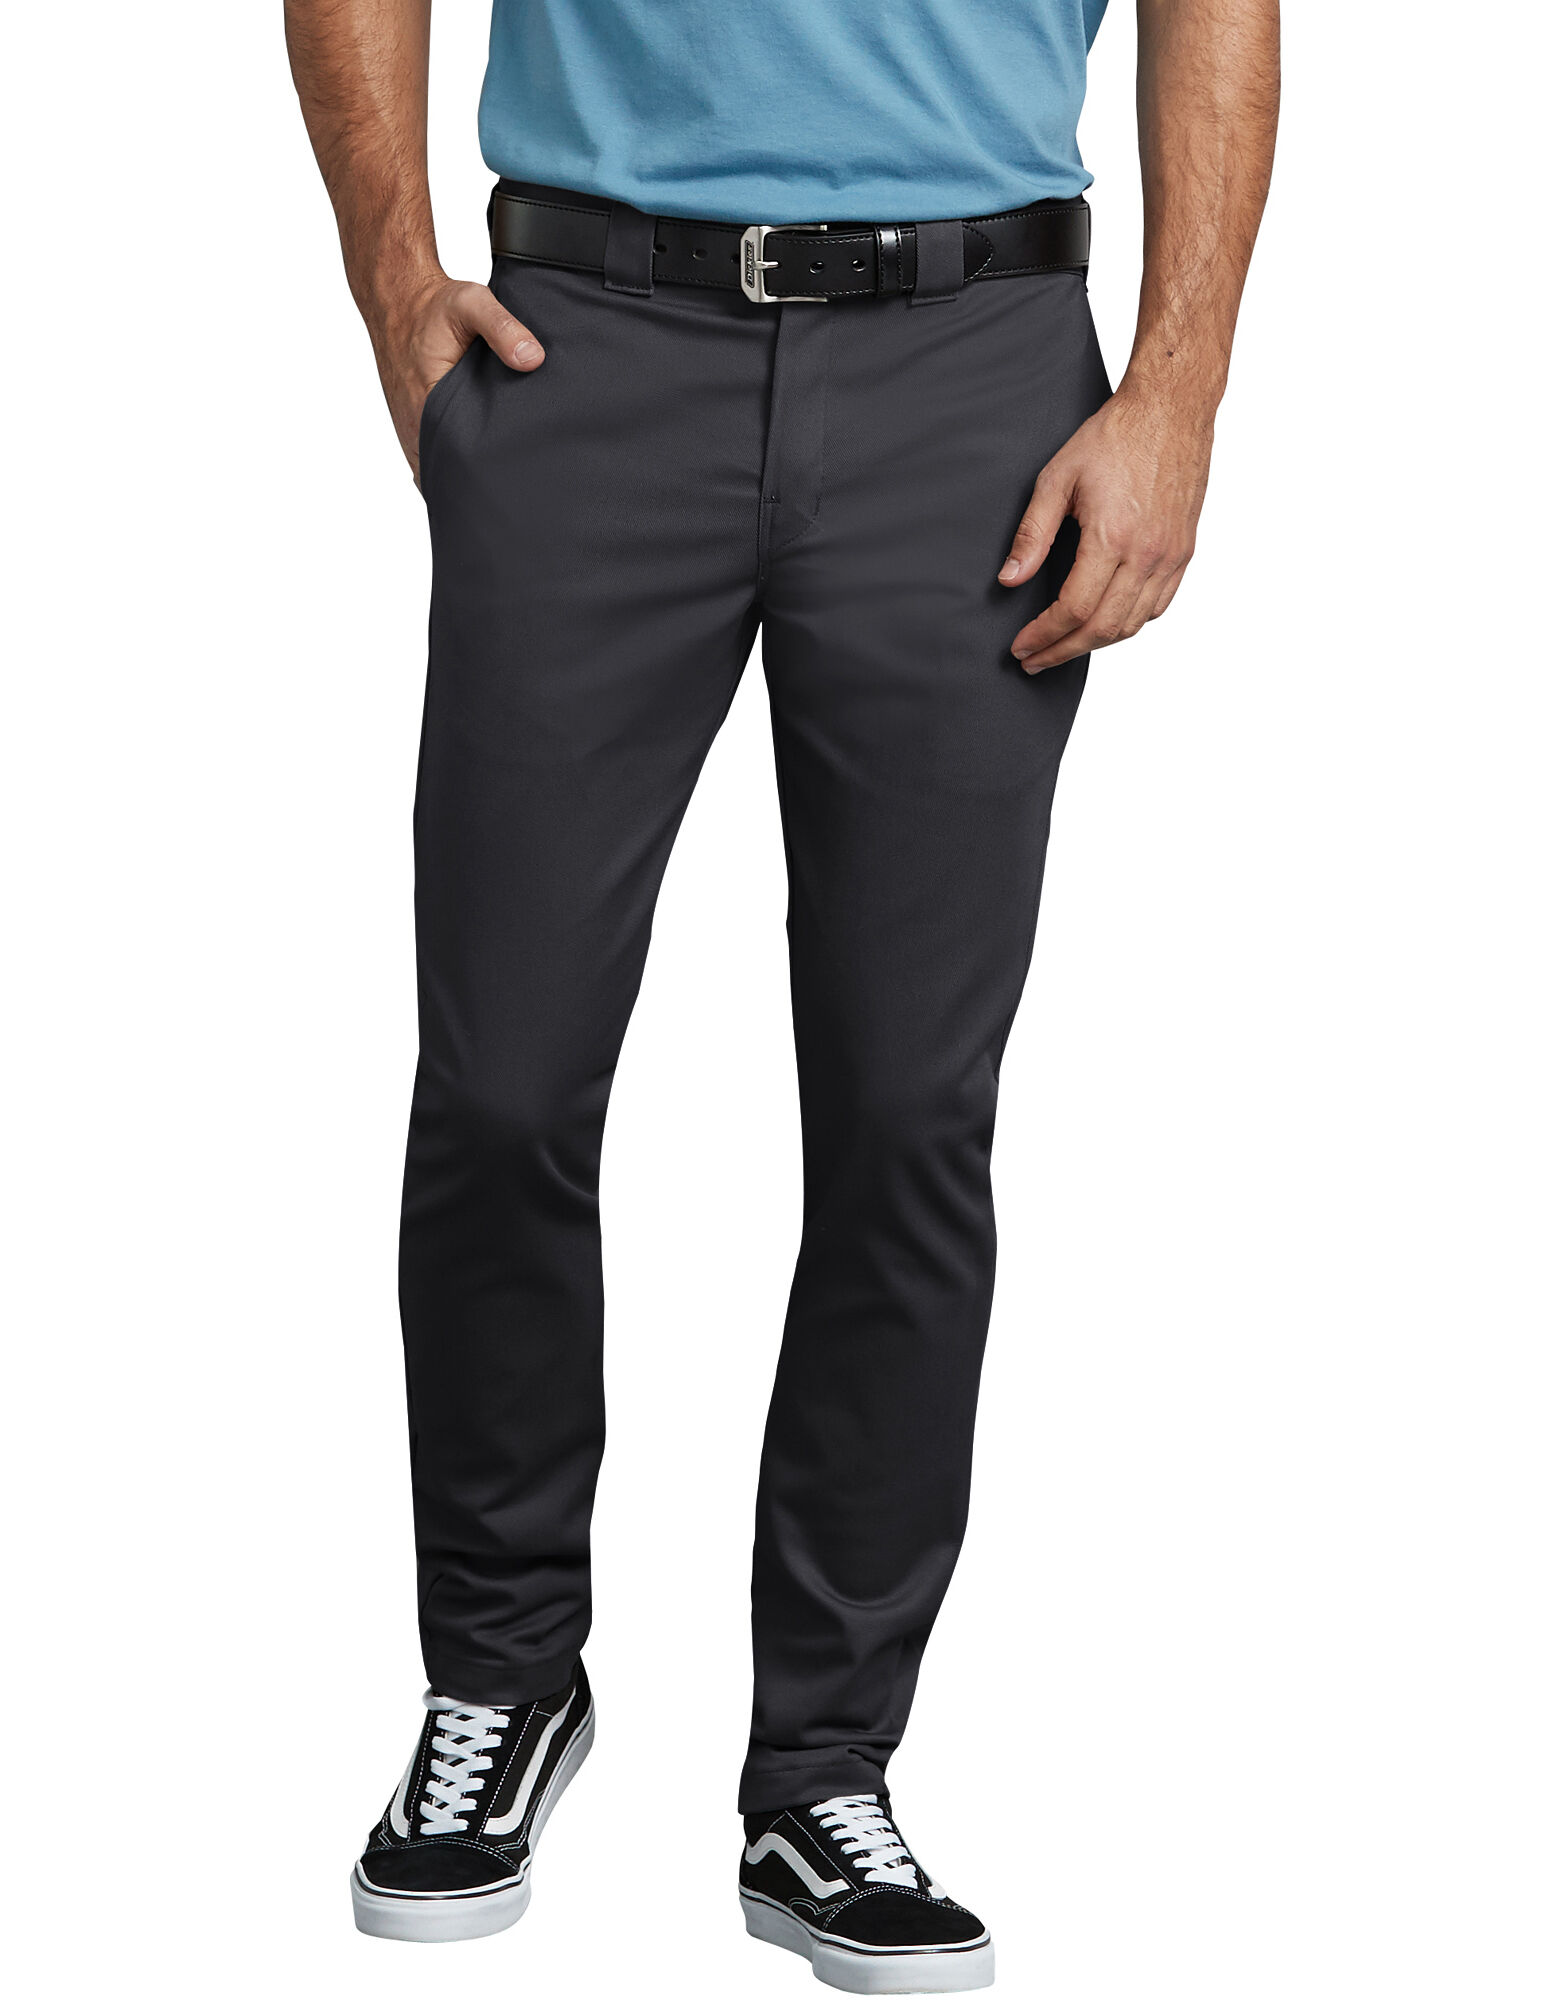 Choose Casual Slim Fit Pants, Work-Wear Slim Fit Pants and even Formal Slim Fit Pants today at Macy's. Slim fit styles for men redefine office-wear, though, and transform every suit into a sensation. and soft colors blend with every suit. Tommy Hilfiger pants .